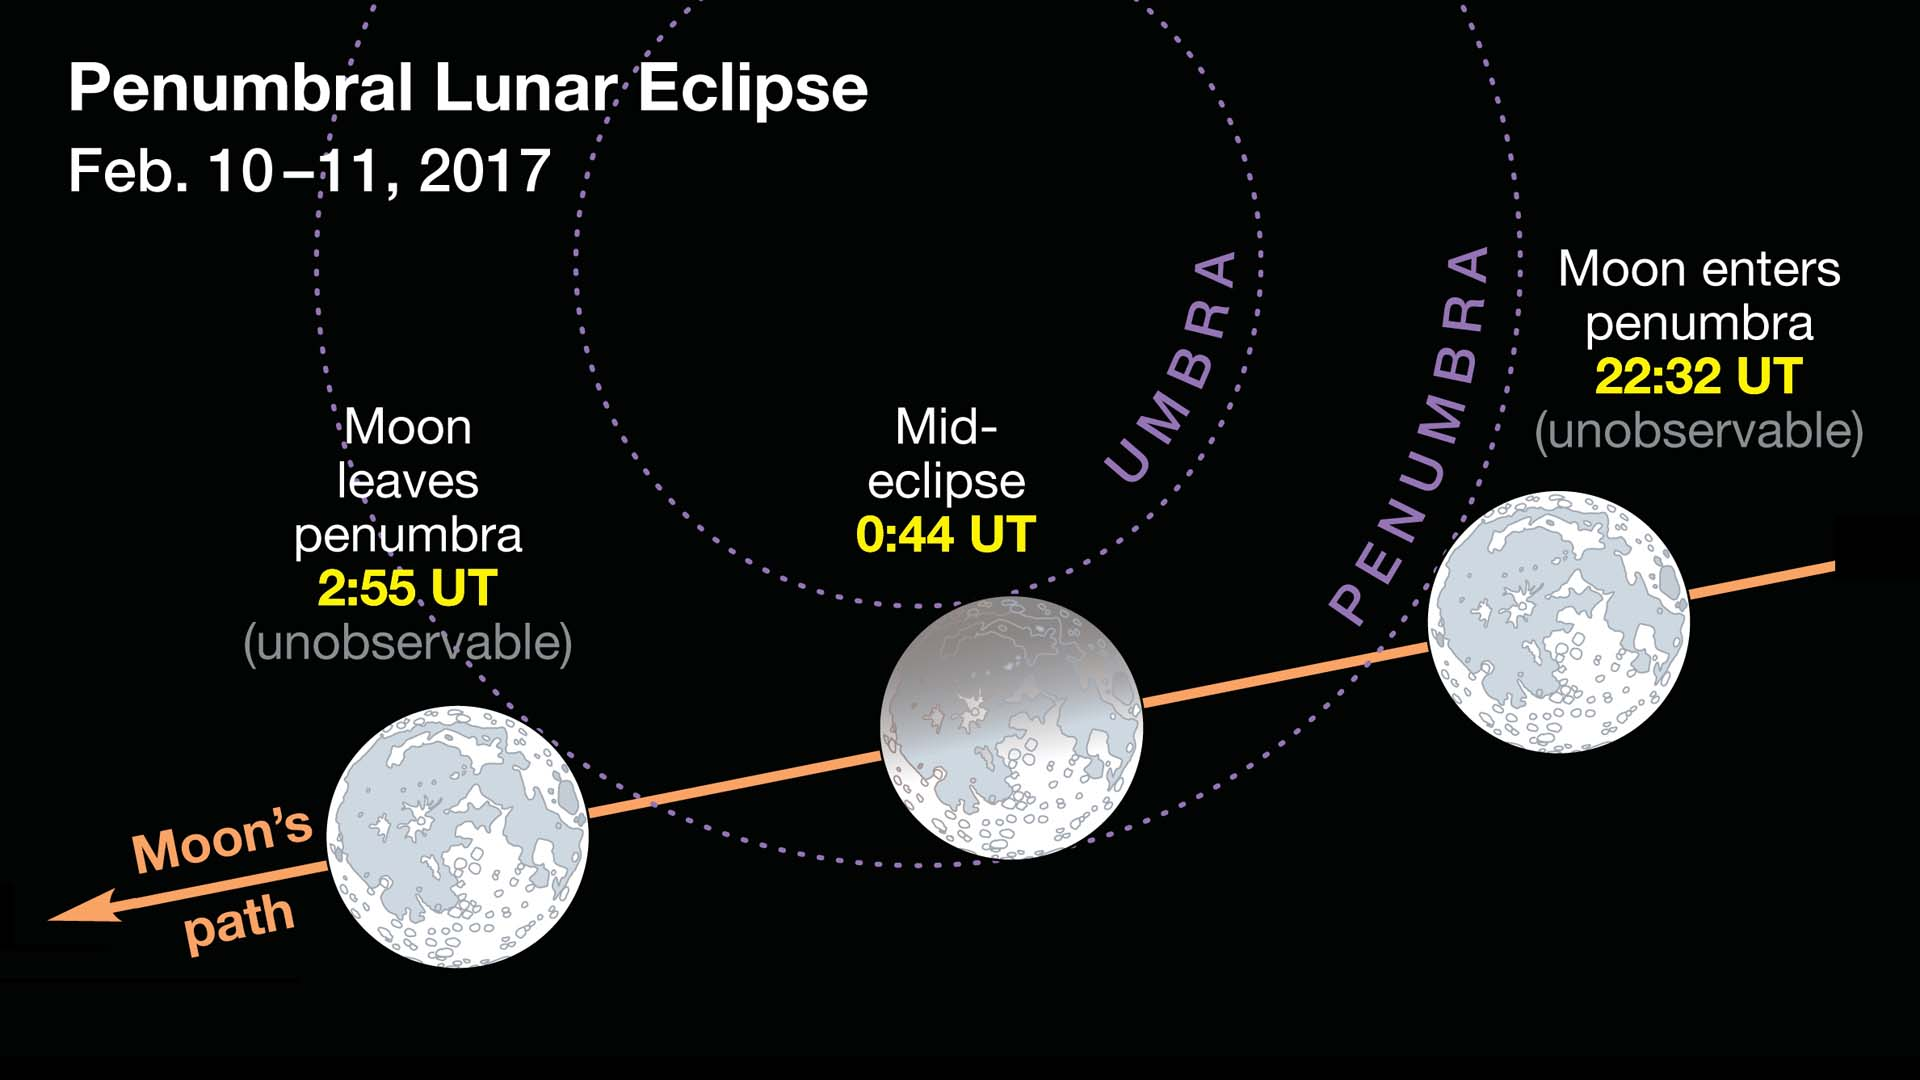 Penumbral Lunar Eclipse. Image from Sky & Telescope